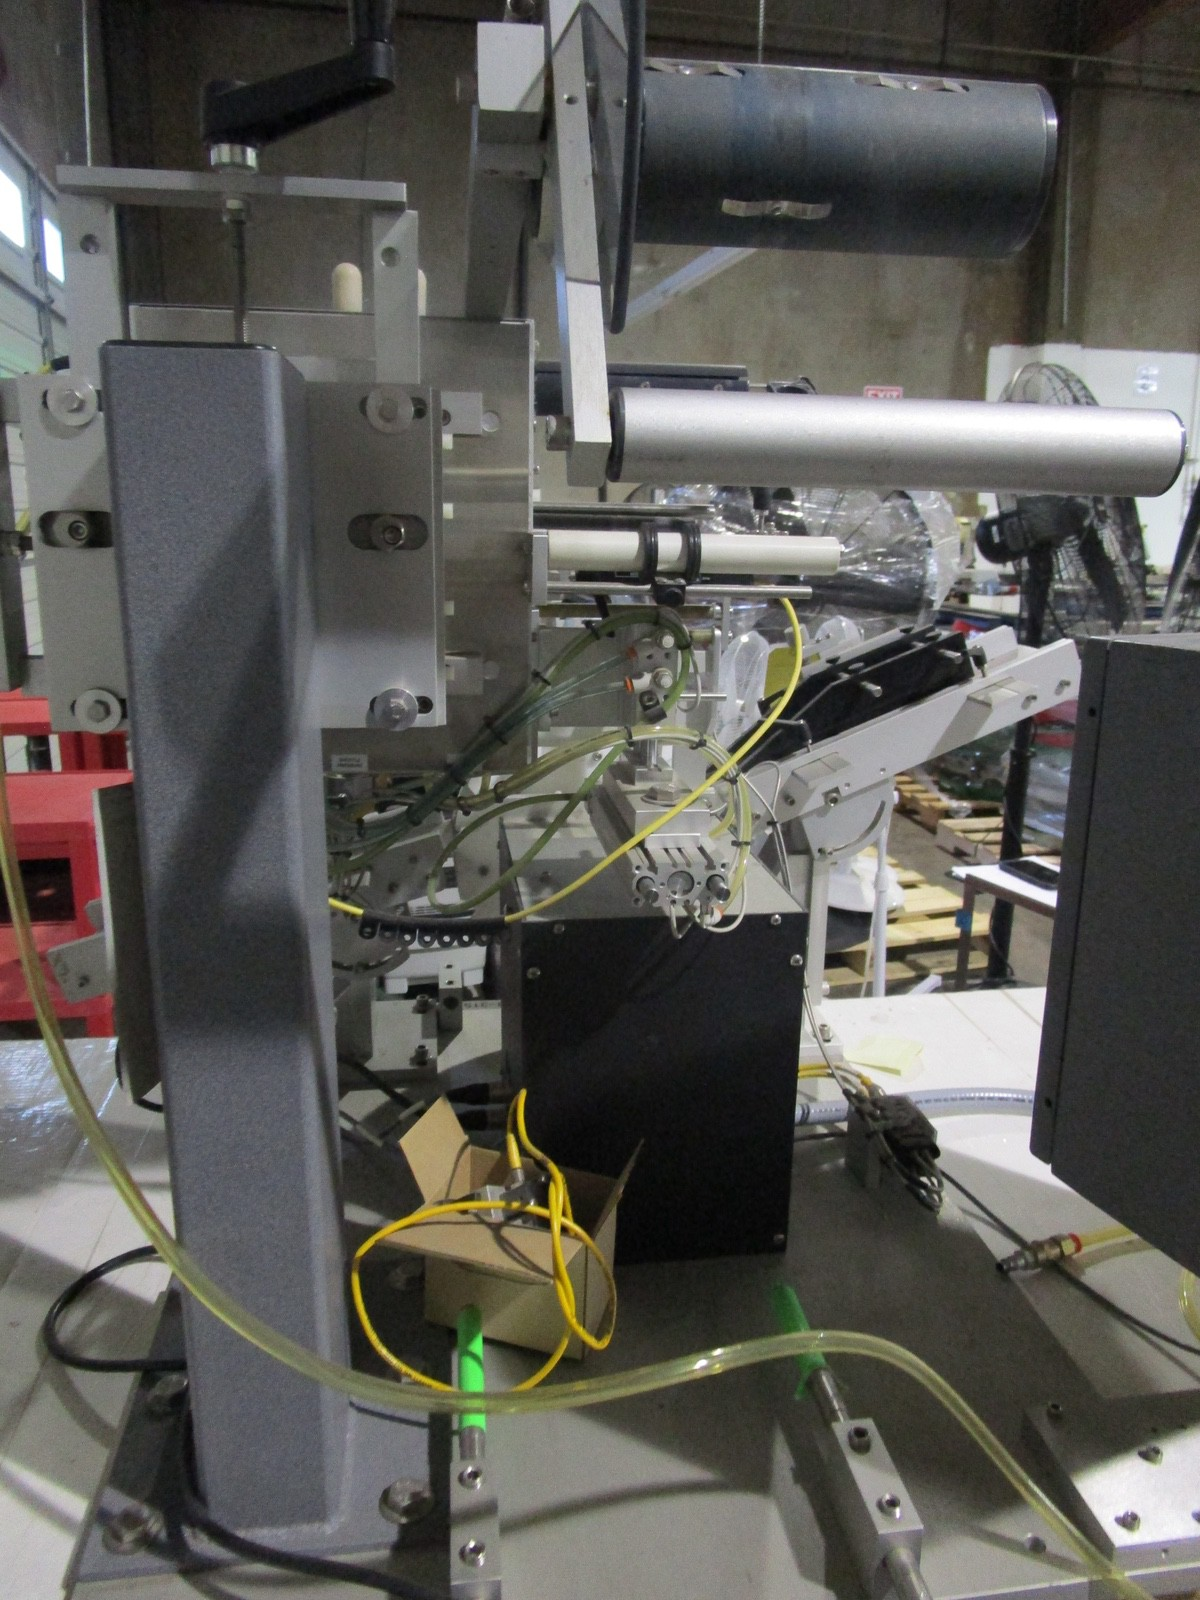 Universal R-315 Carrousel/L-15 Labeling System/L-60 Left Hand s/n 718-004-1-05-1064 | Rig Fee: $50 - Image 6 of 10